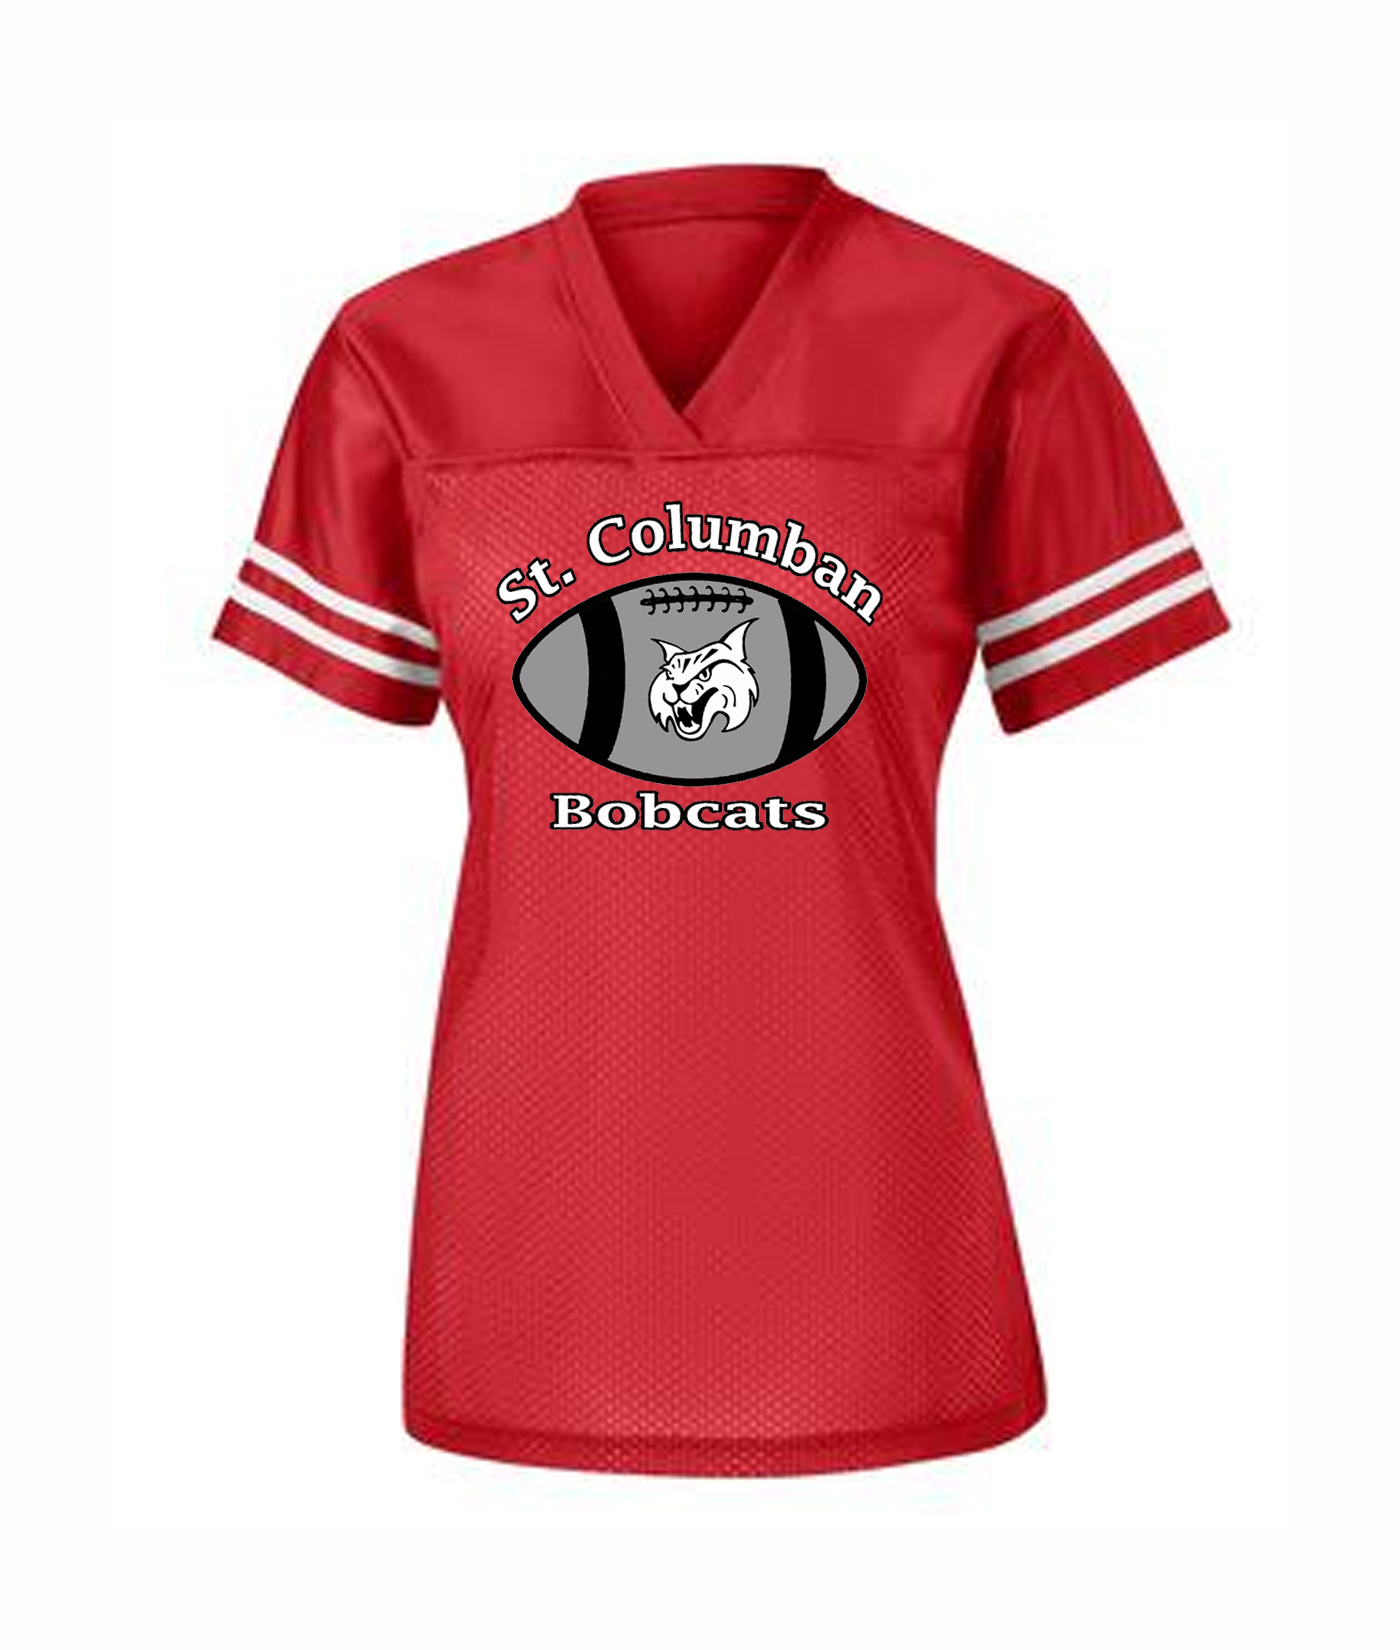 St. Columban Bobcat in Football Ladies Jersey Red